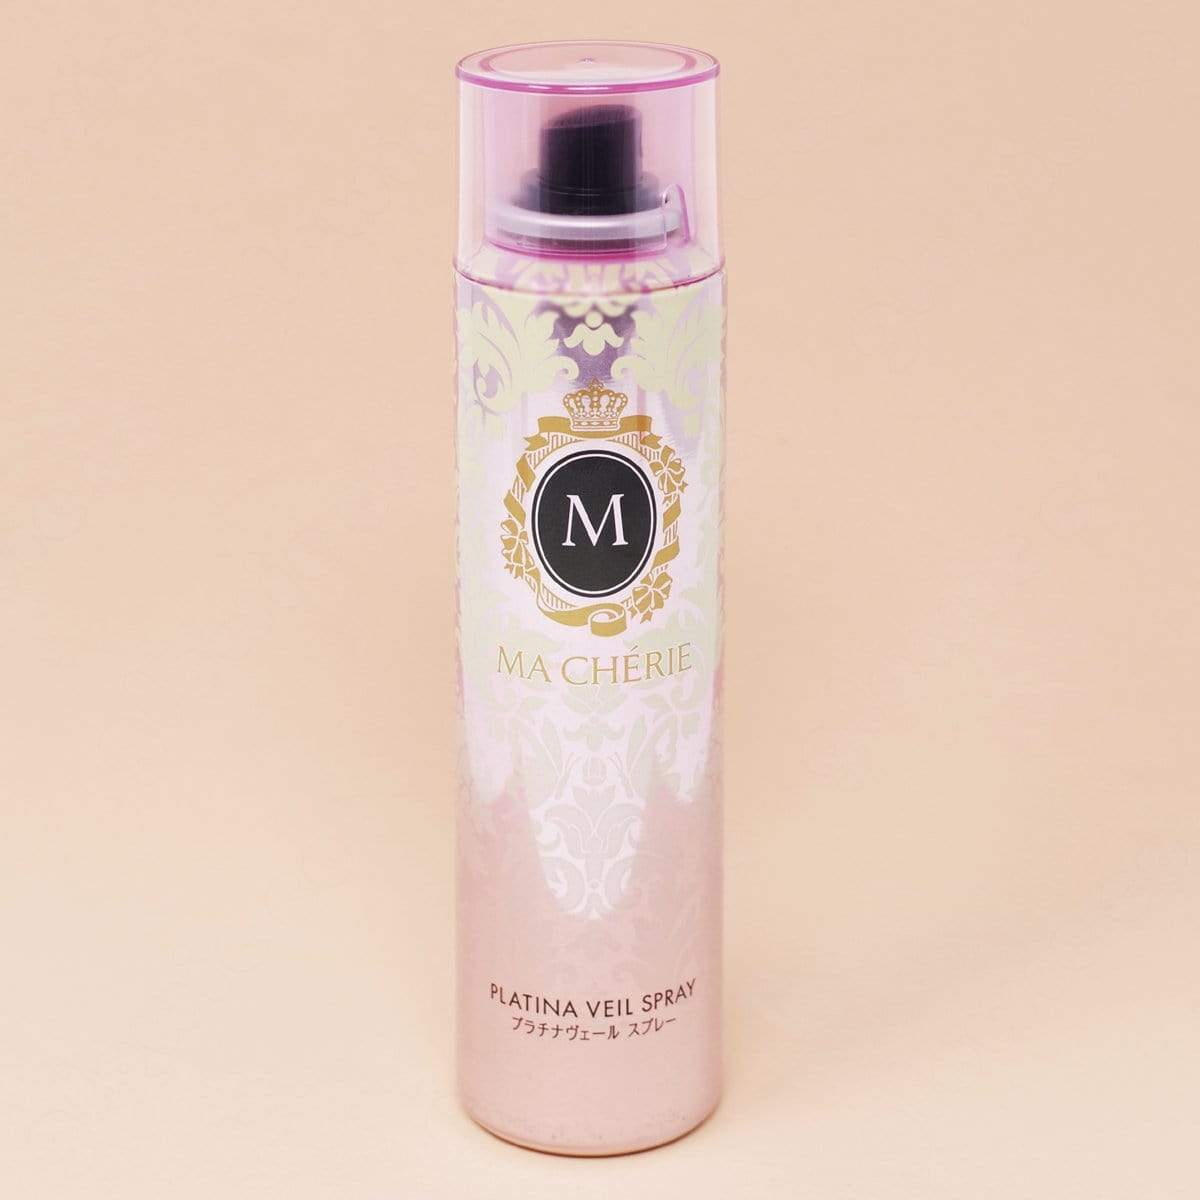 Ma Cherie Platinum Veil Hair Finishing Spray EX